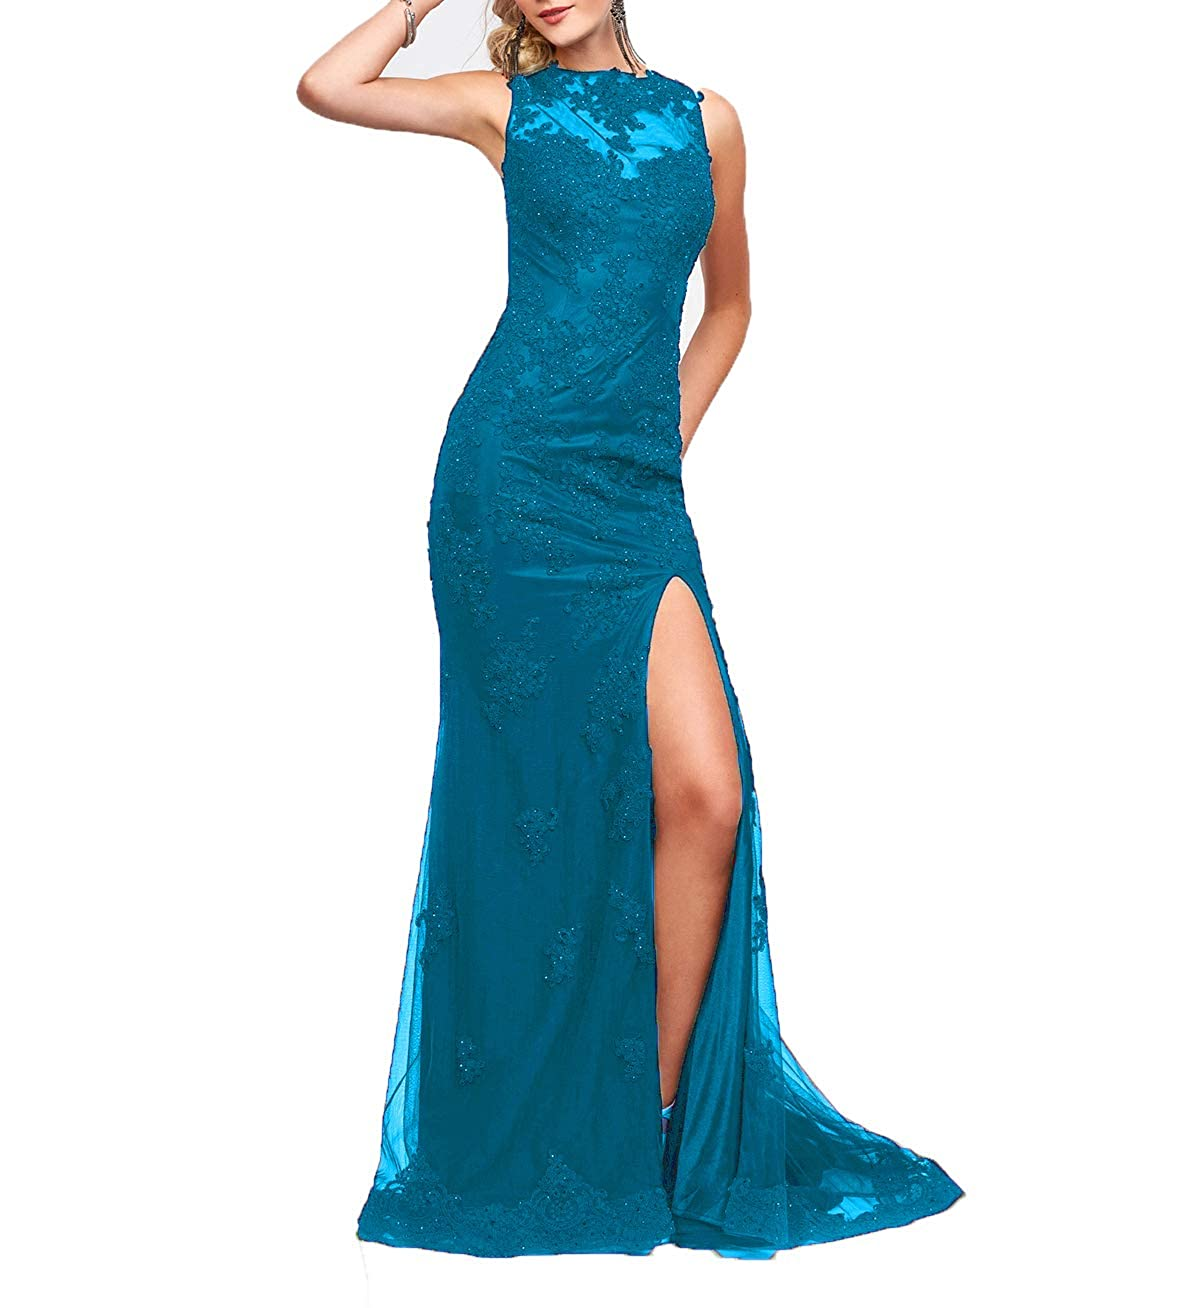 bluee Wanshaqin Cap Sleeveless Lace Mermaid Prom Formal Dresses Evening Cocktail Dress Bridesmaid Gowns for Events Party